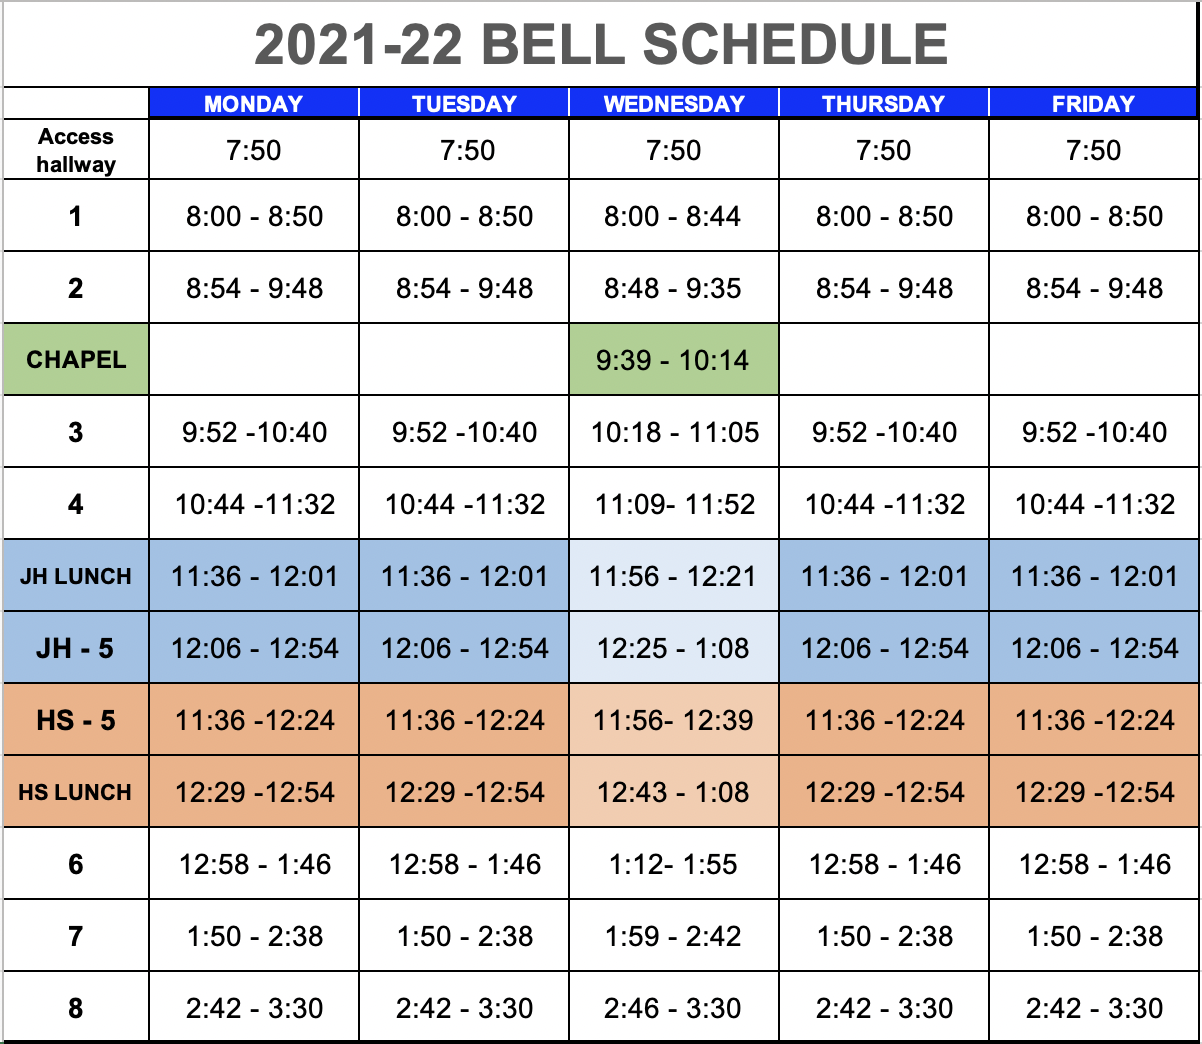 bell schedule secondary 2021-22